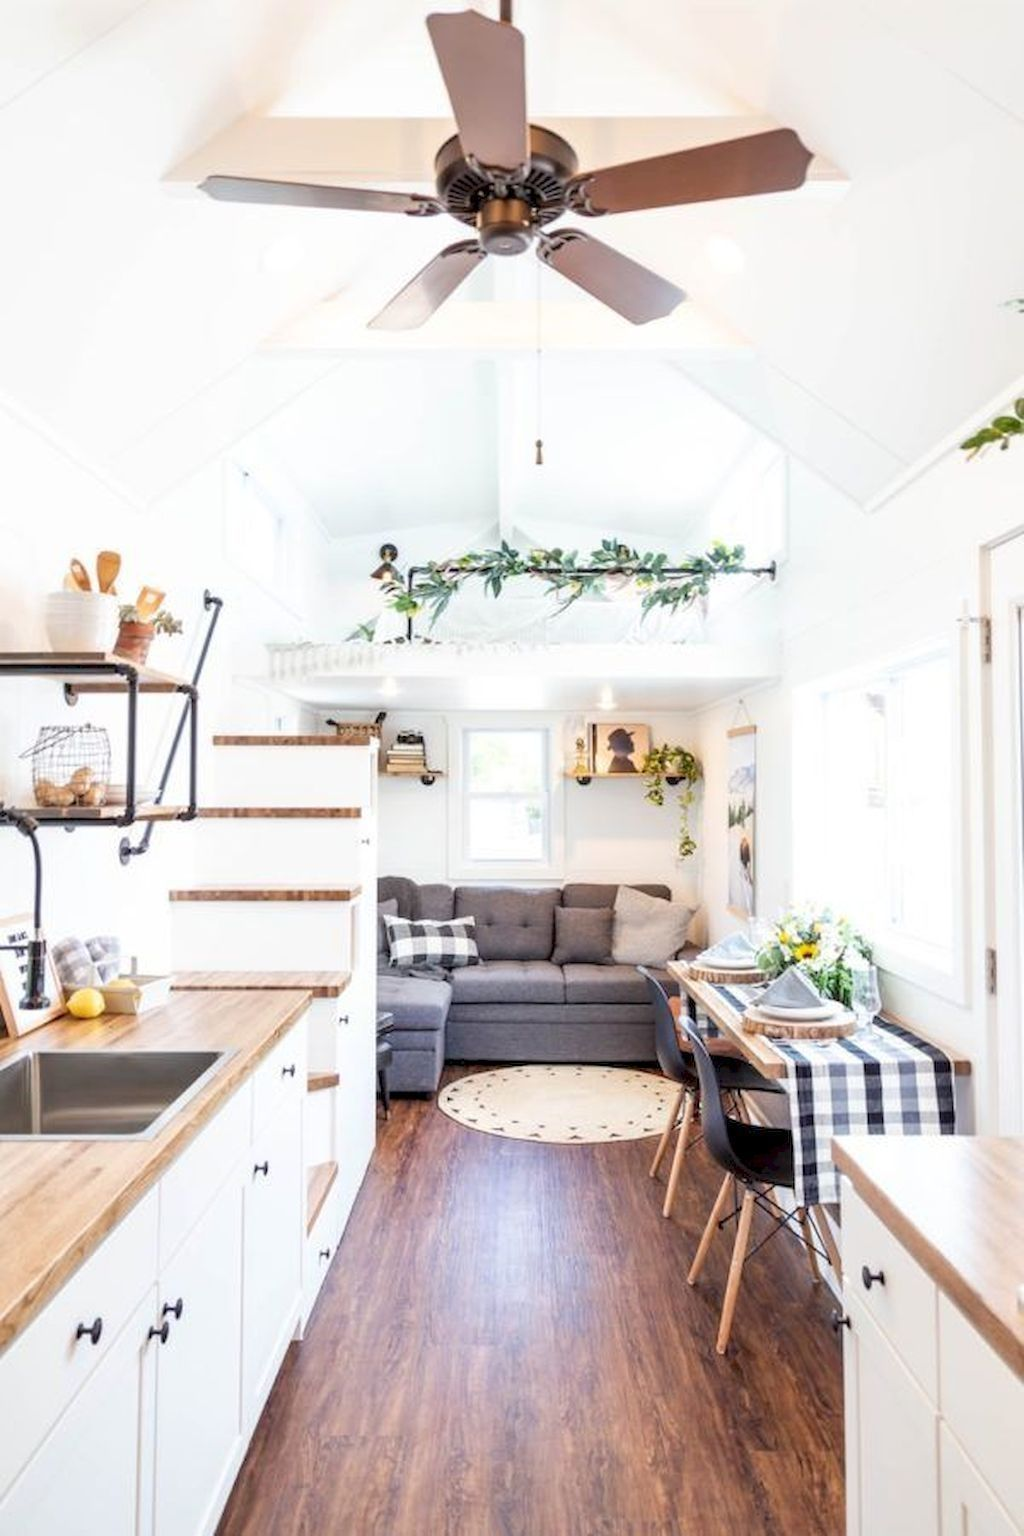 20+ Relaxing Tiny House Makeovers Design Ideas With Farmhouse Style #tinyhousebathroom